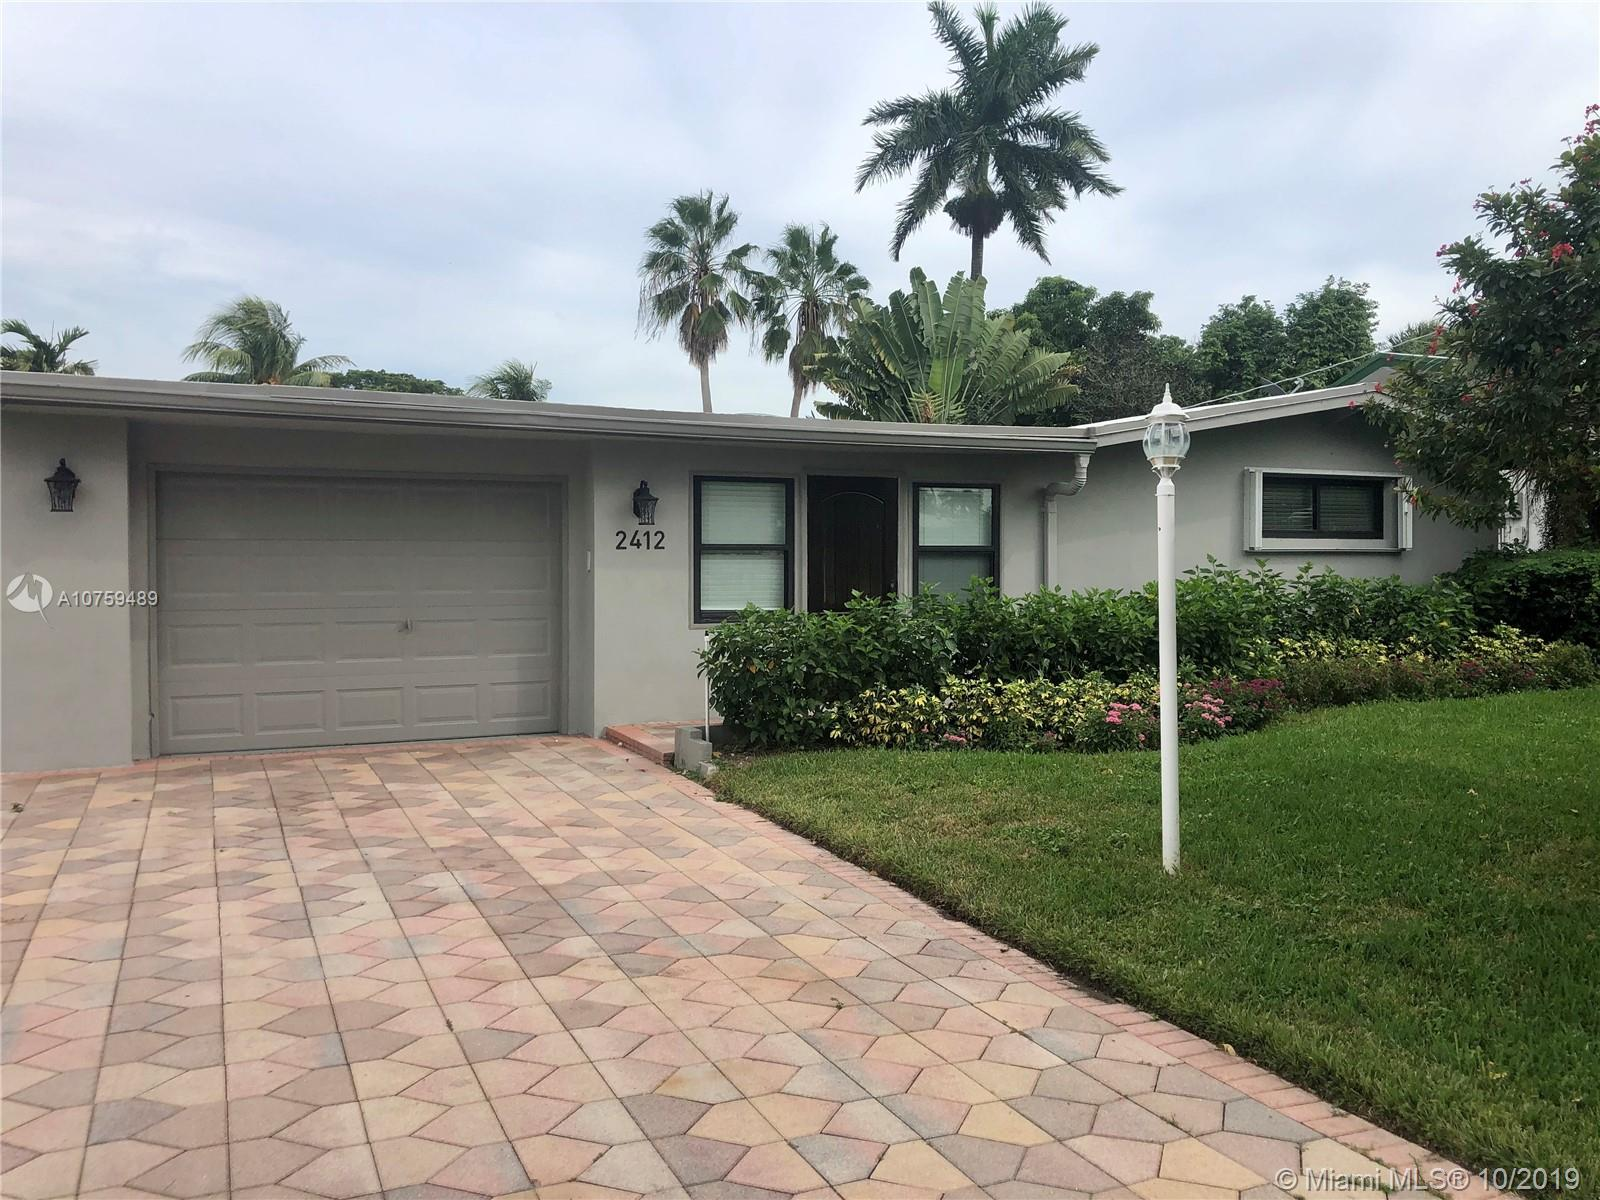 Beautiful dockside home with a pool and garage. Spacious open layout with exposed beam ceilings. Abundance of natural lighting and new flooring. Home has direct ocean access with 65' on the water. Huge walk in closet in master. Live the luxurious florida lifestyle at an affordable price.